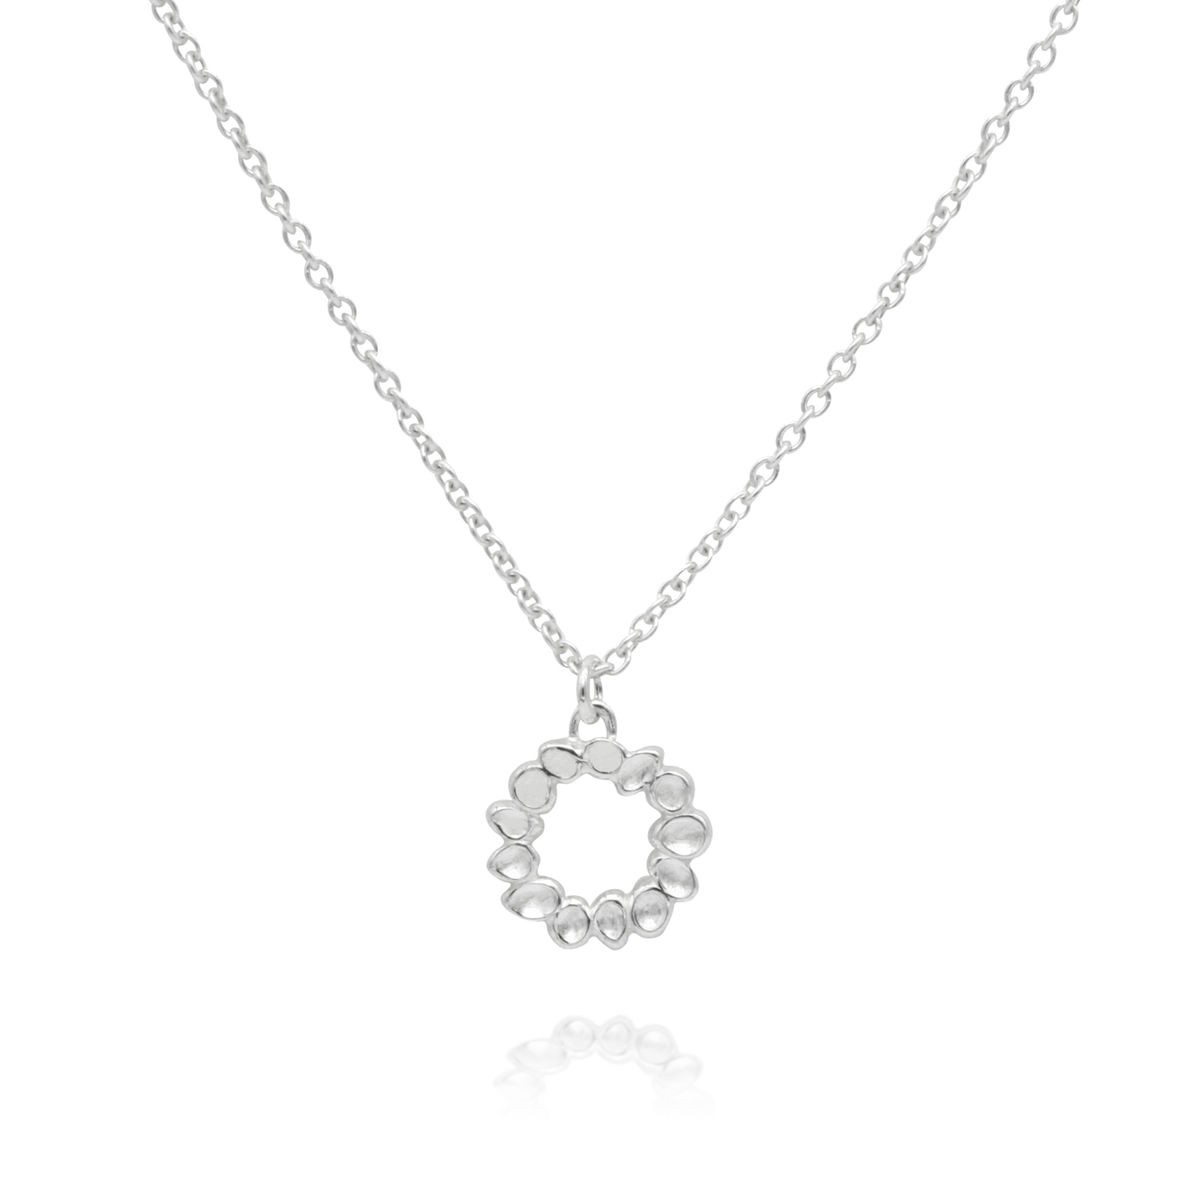 SHIMMER mini circle pendant - sterling silver - product images  of